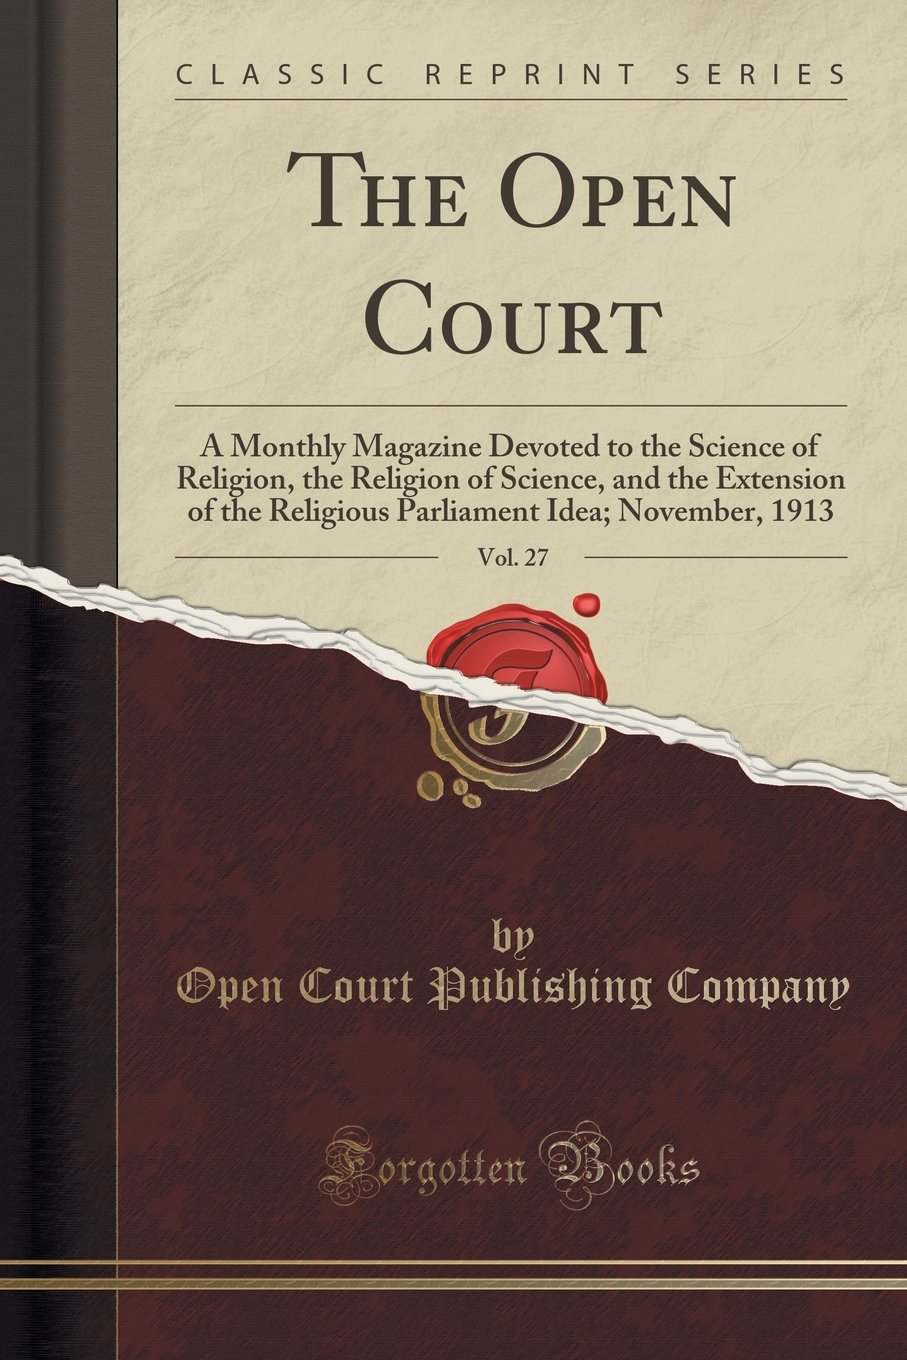 The Open Court, Vol. 27: A Monthly Magazine Devoted to the Science of Religion, the Religion of Science, and the Extension of the Religious Parliament Idea; November, 1913 (Classic Reprint) ebook